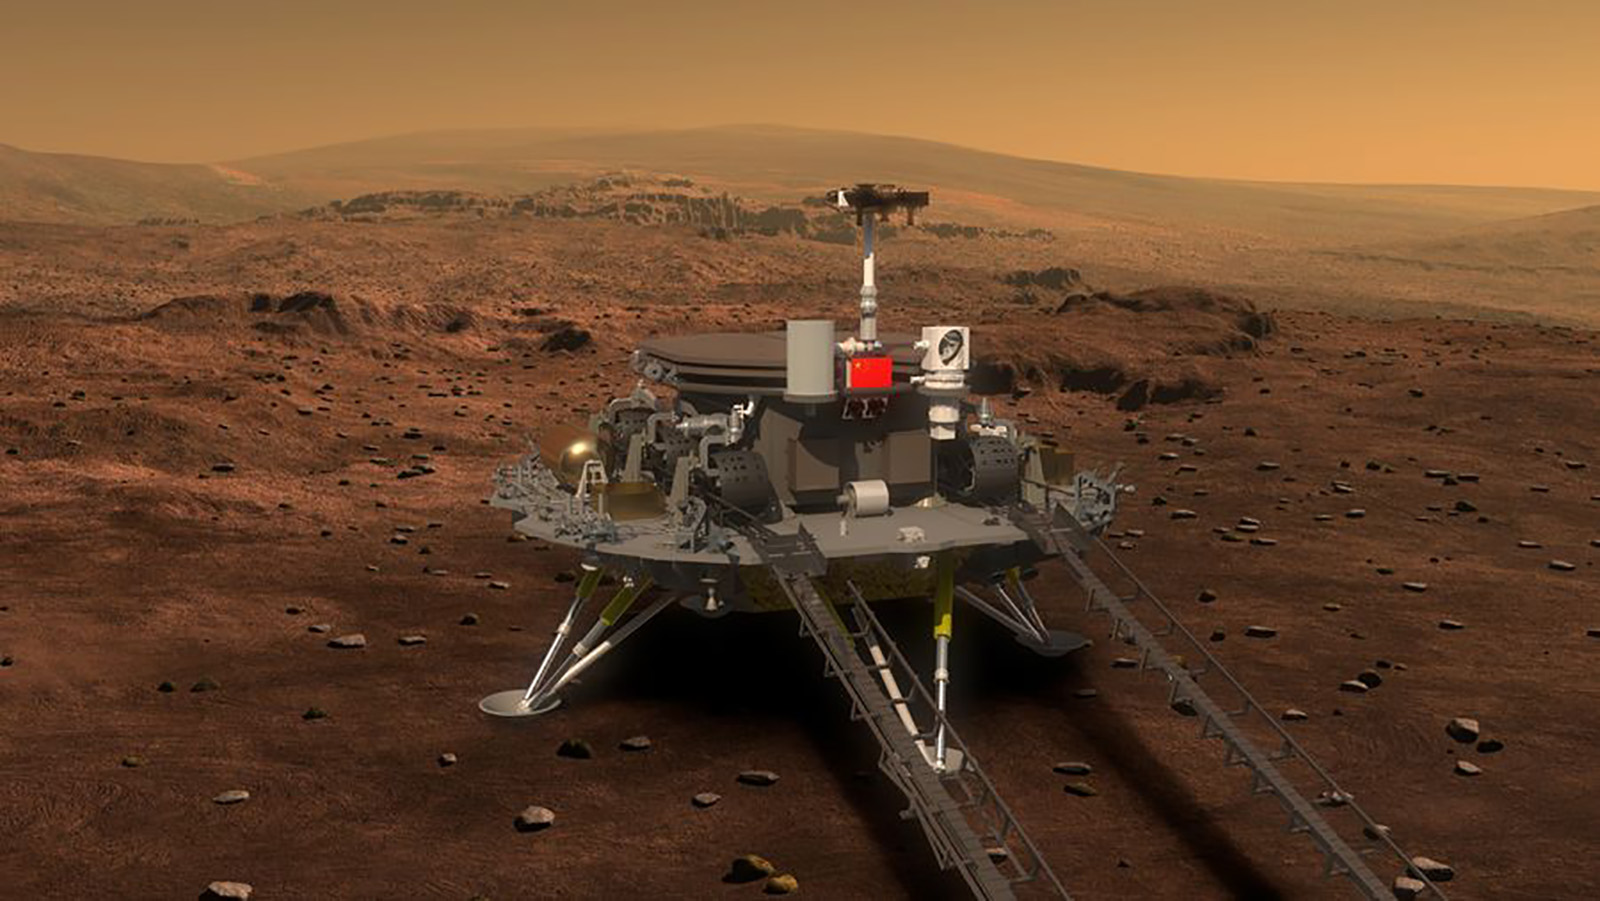 China has successfully landed a rover on Mars, state media says